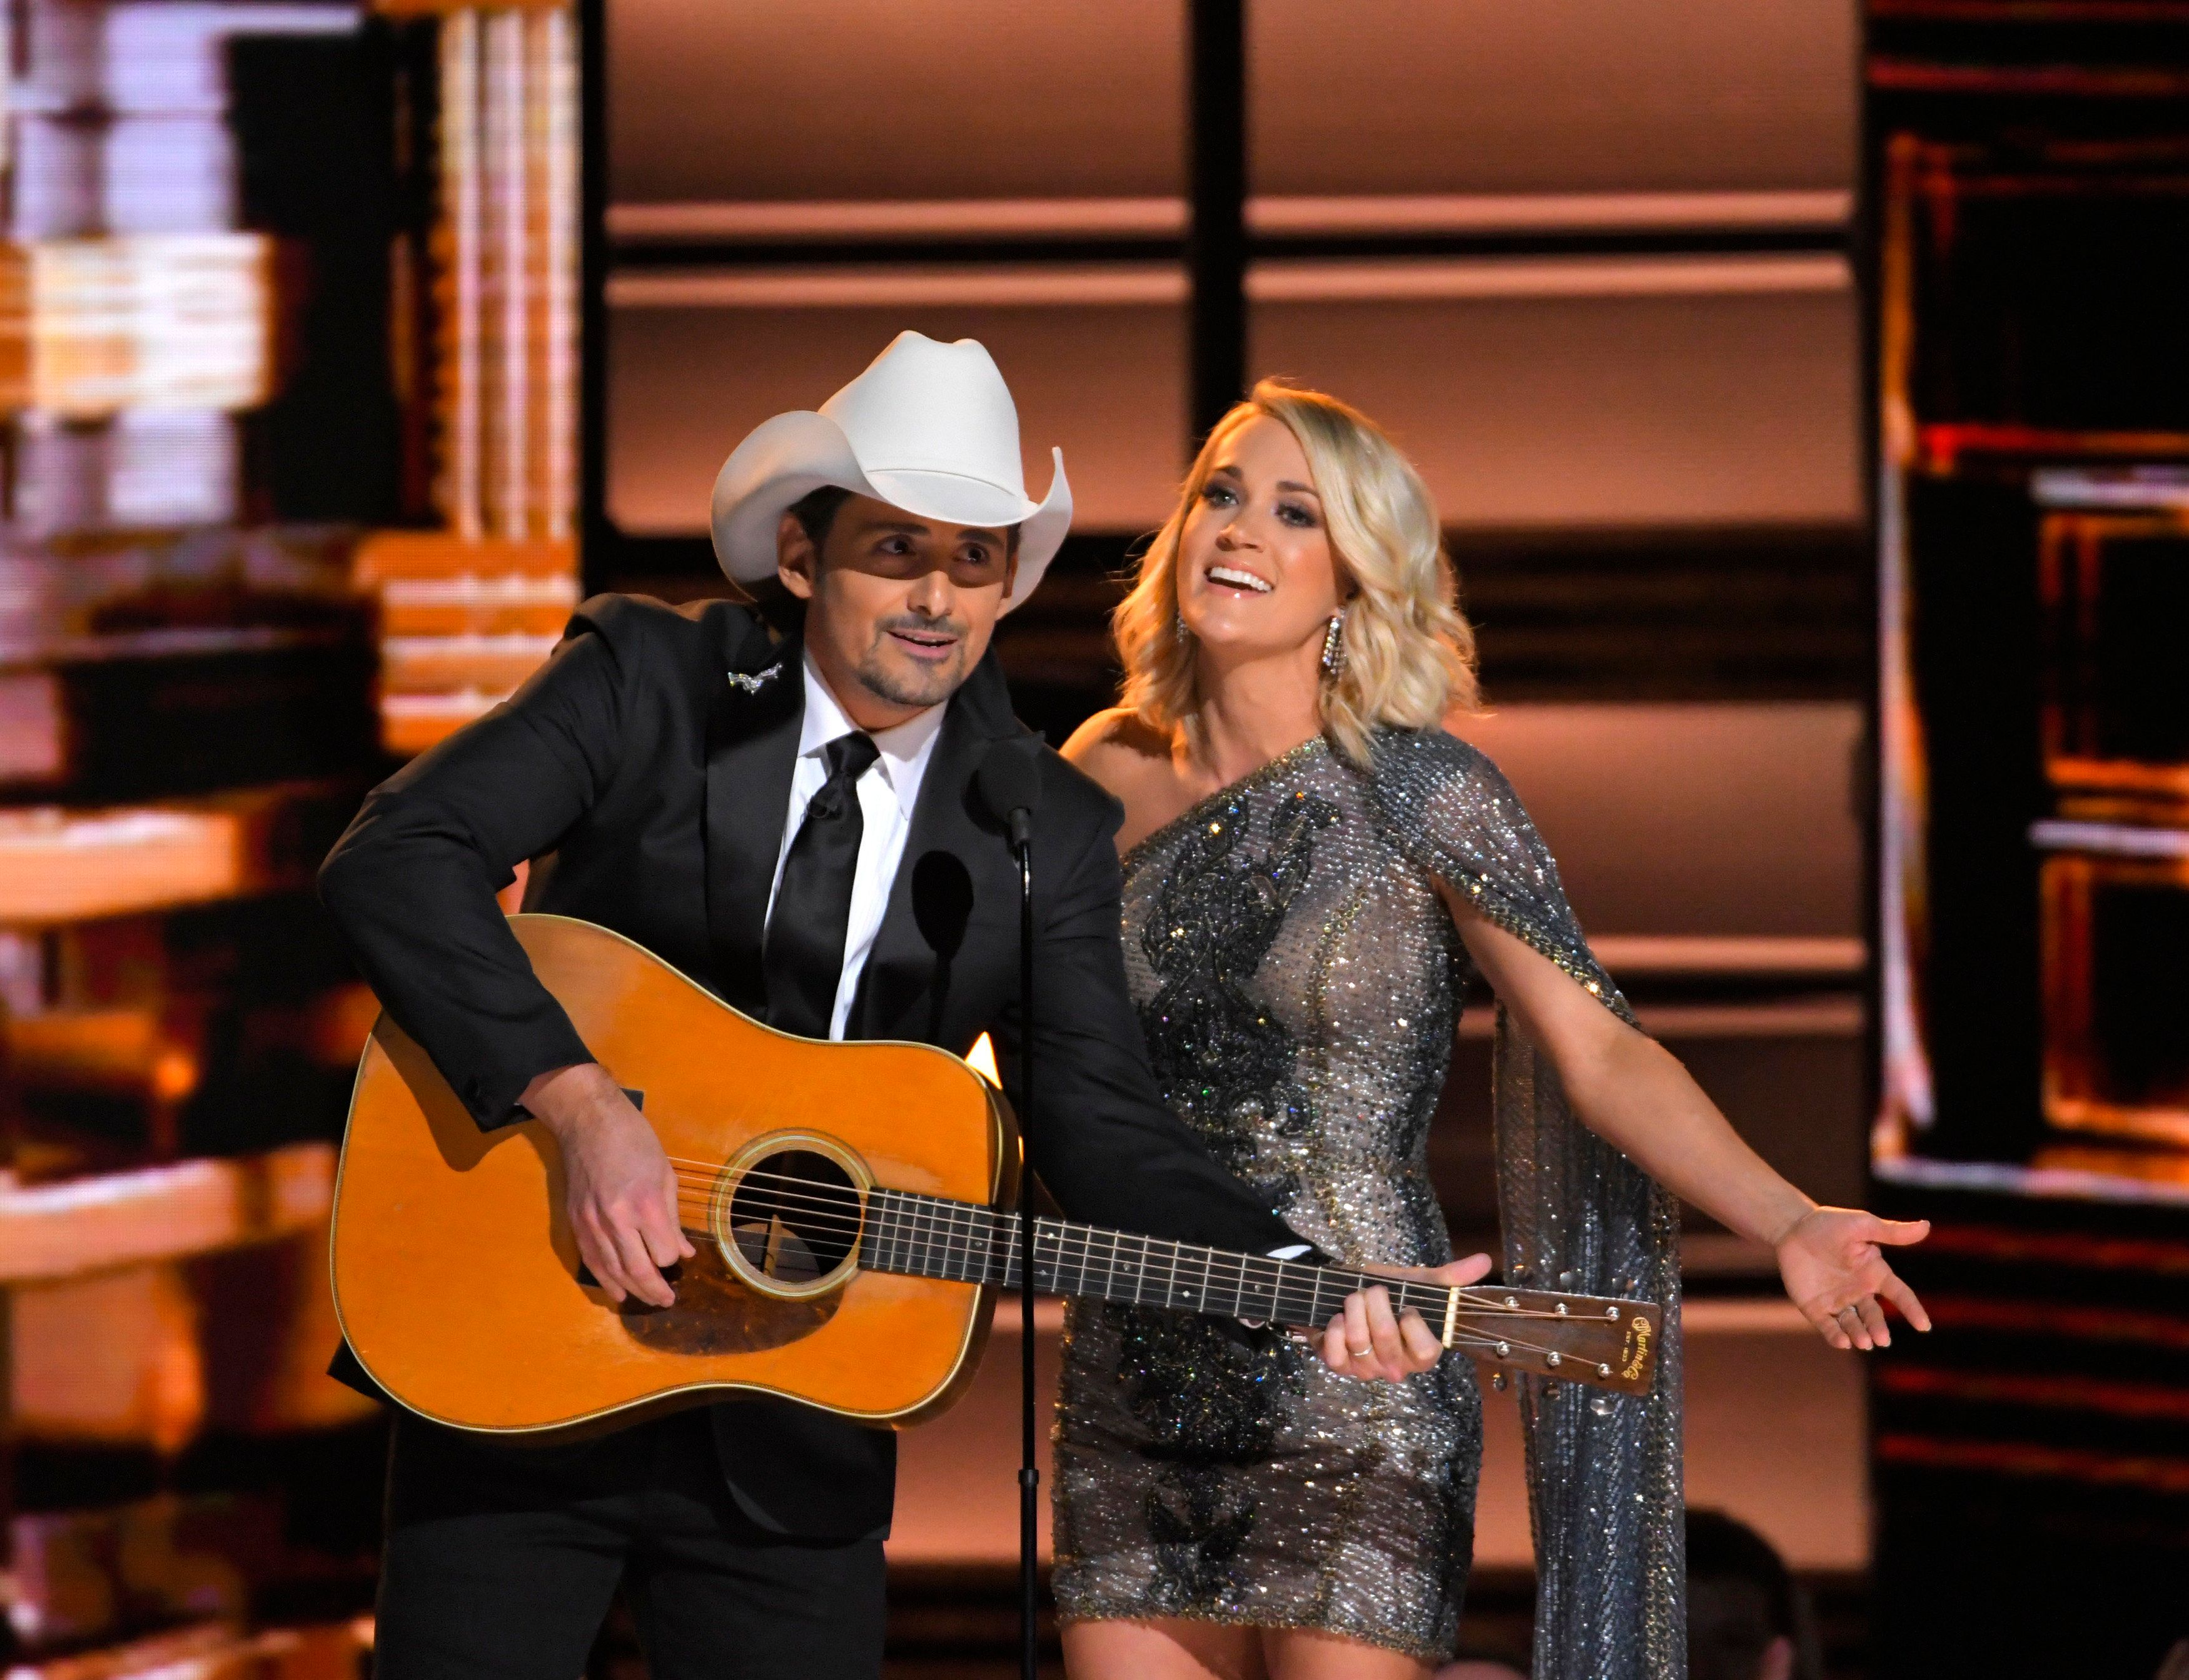 Hosts Brad Paisley and Carrie Underwood open the show at the 50th Annual Country Music Association Awards in Nashville, Tennessee, U.S., November 2, 2016.  REUTERS/Harrison McClary